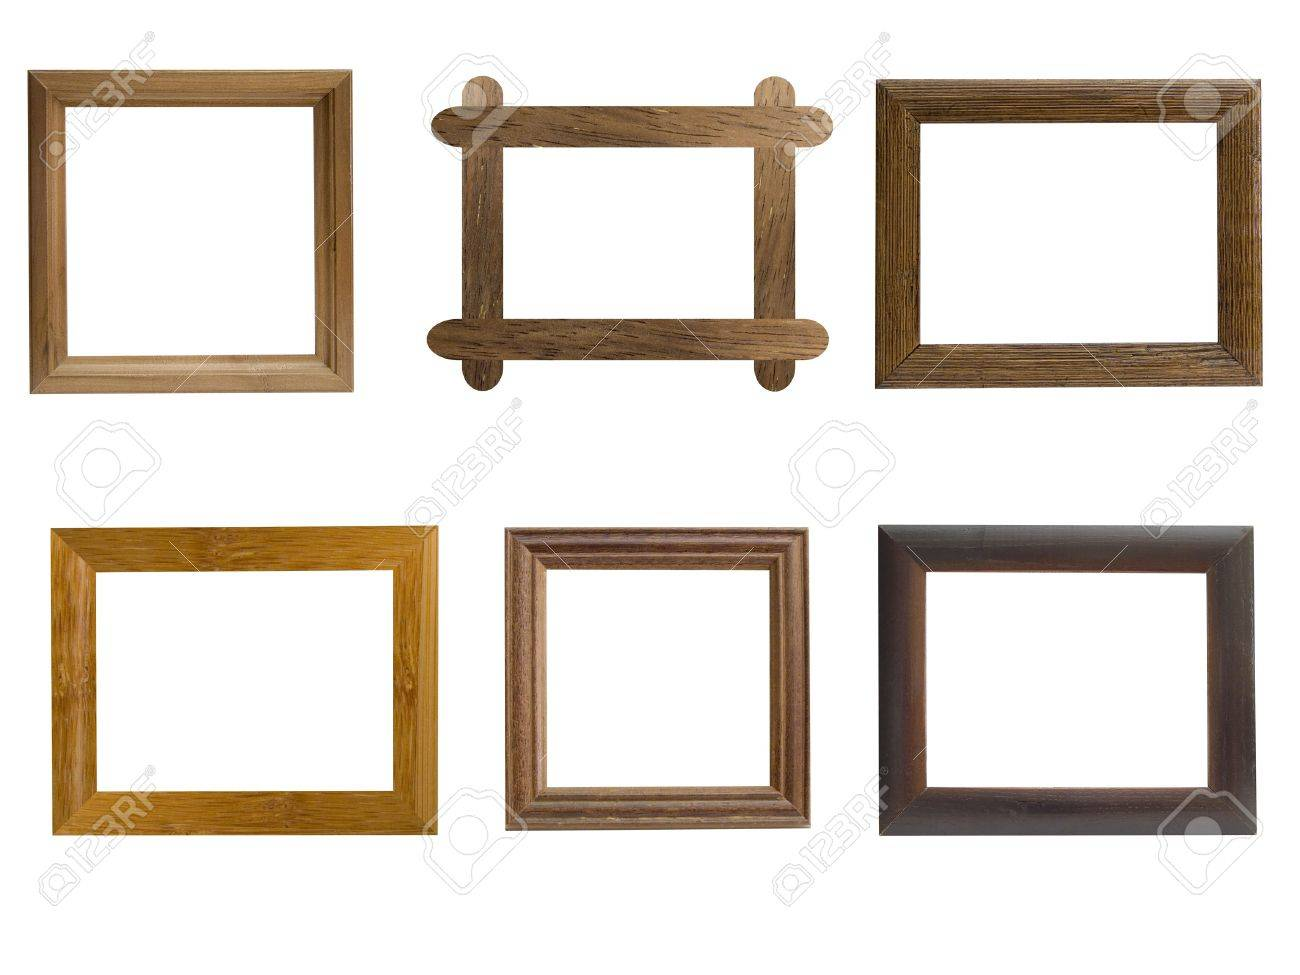 harmony kingdom picturesque collection 4 tile medium frame frames from natural wood on a white background - Natural Wood Frames